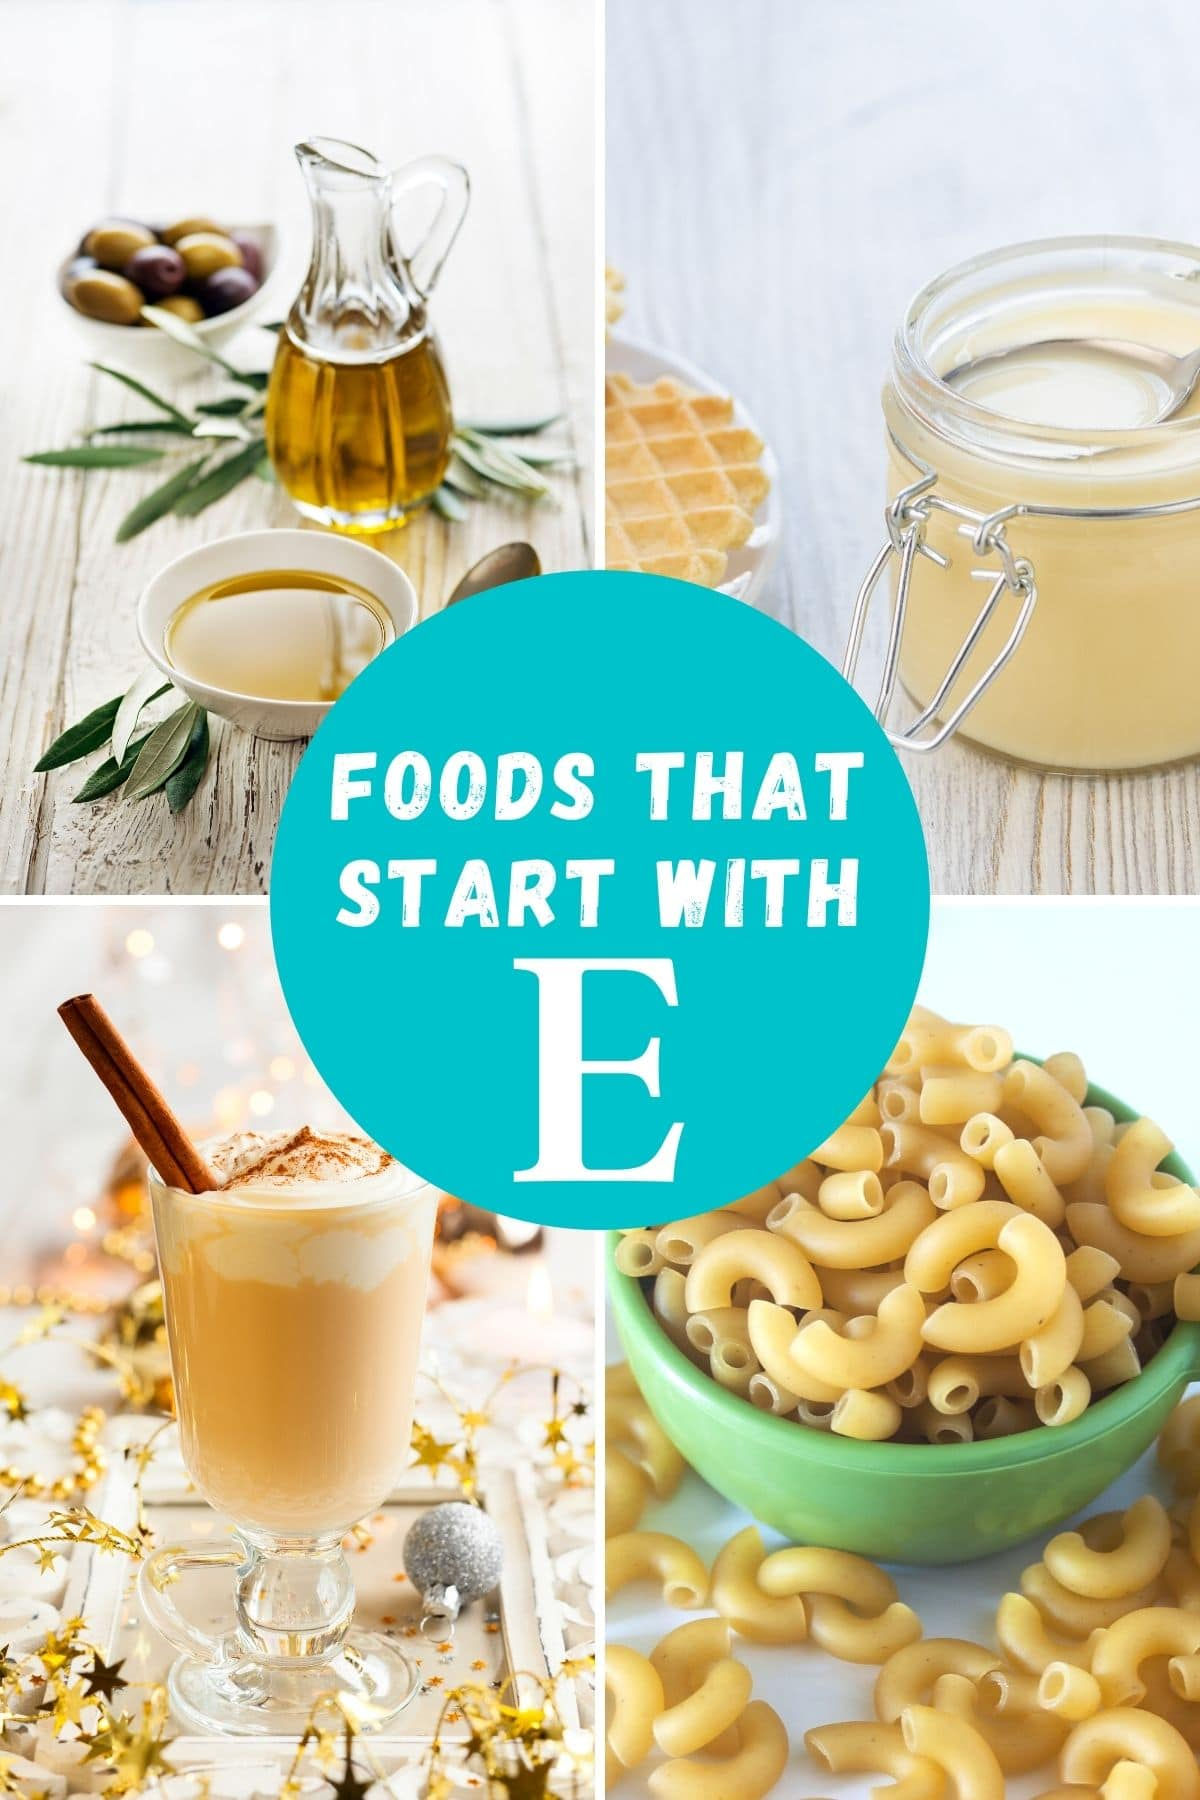 Food that starts with E